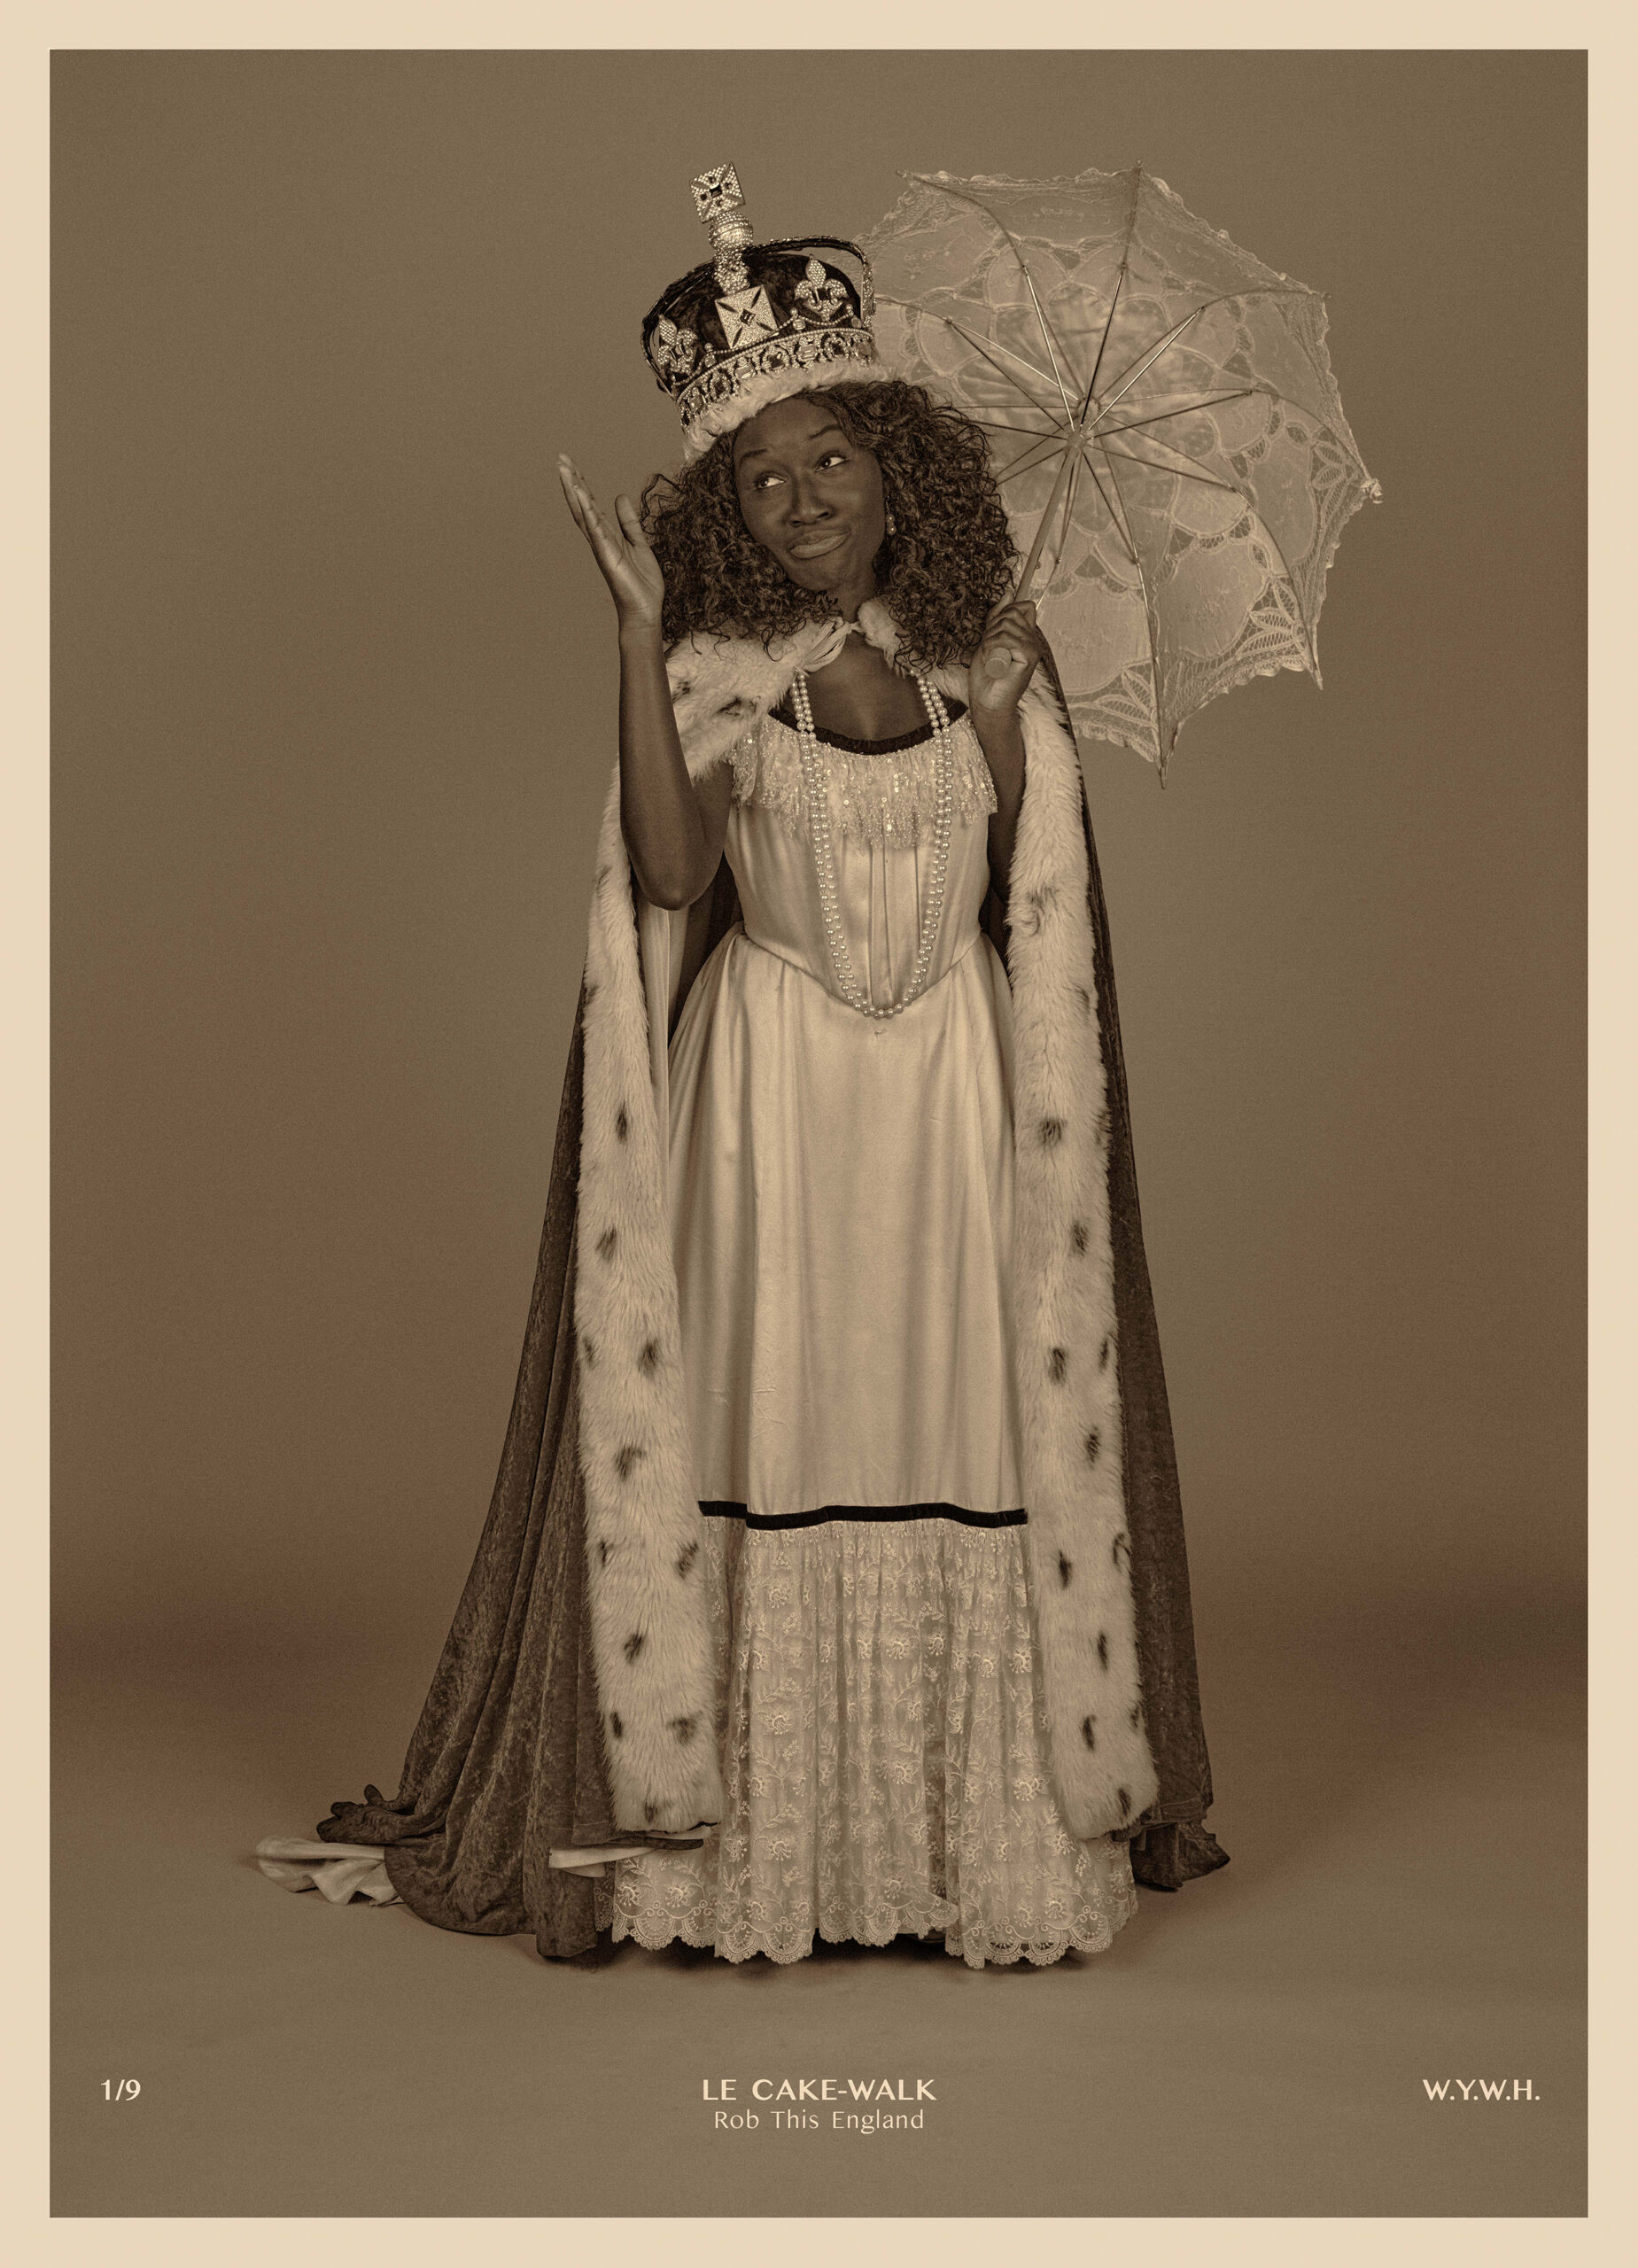 From the exhibition A Pciture of Health, Heather Agyepong is dressed in a white dress and a royal cape and crown holding a white parasol.